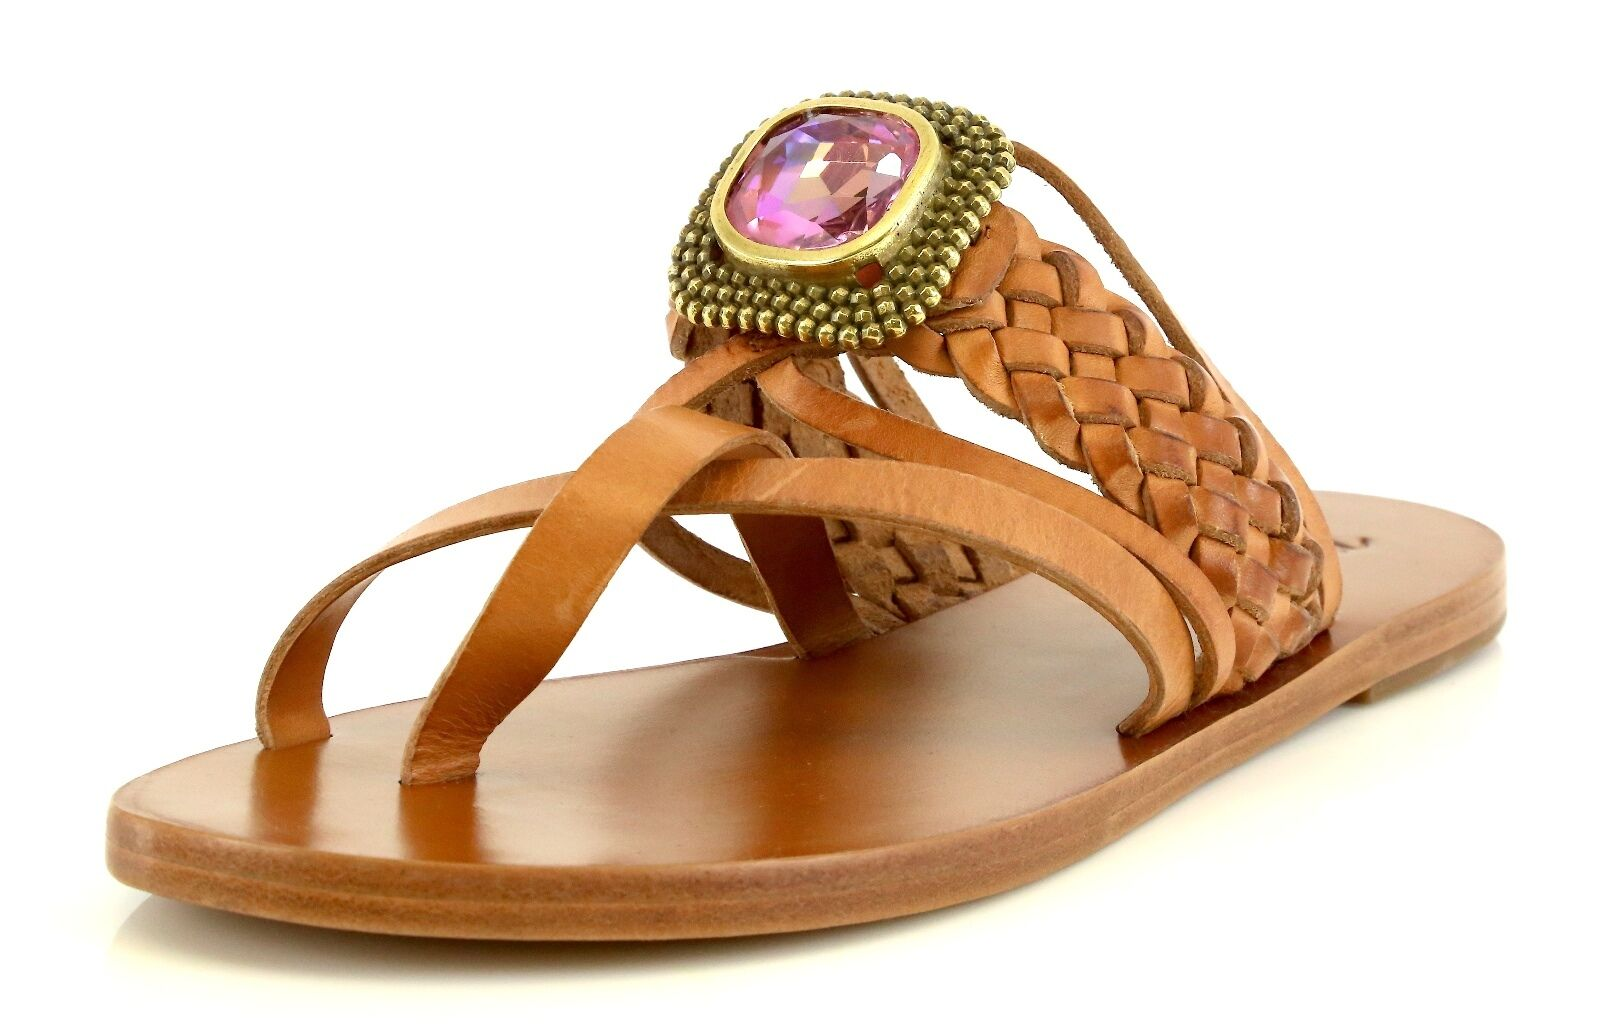 Miss. Trish SEAJEWEL Marronee Leather Sandals 7060 7060 7060 Dimensione 7.5 M NEW  4fe818